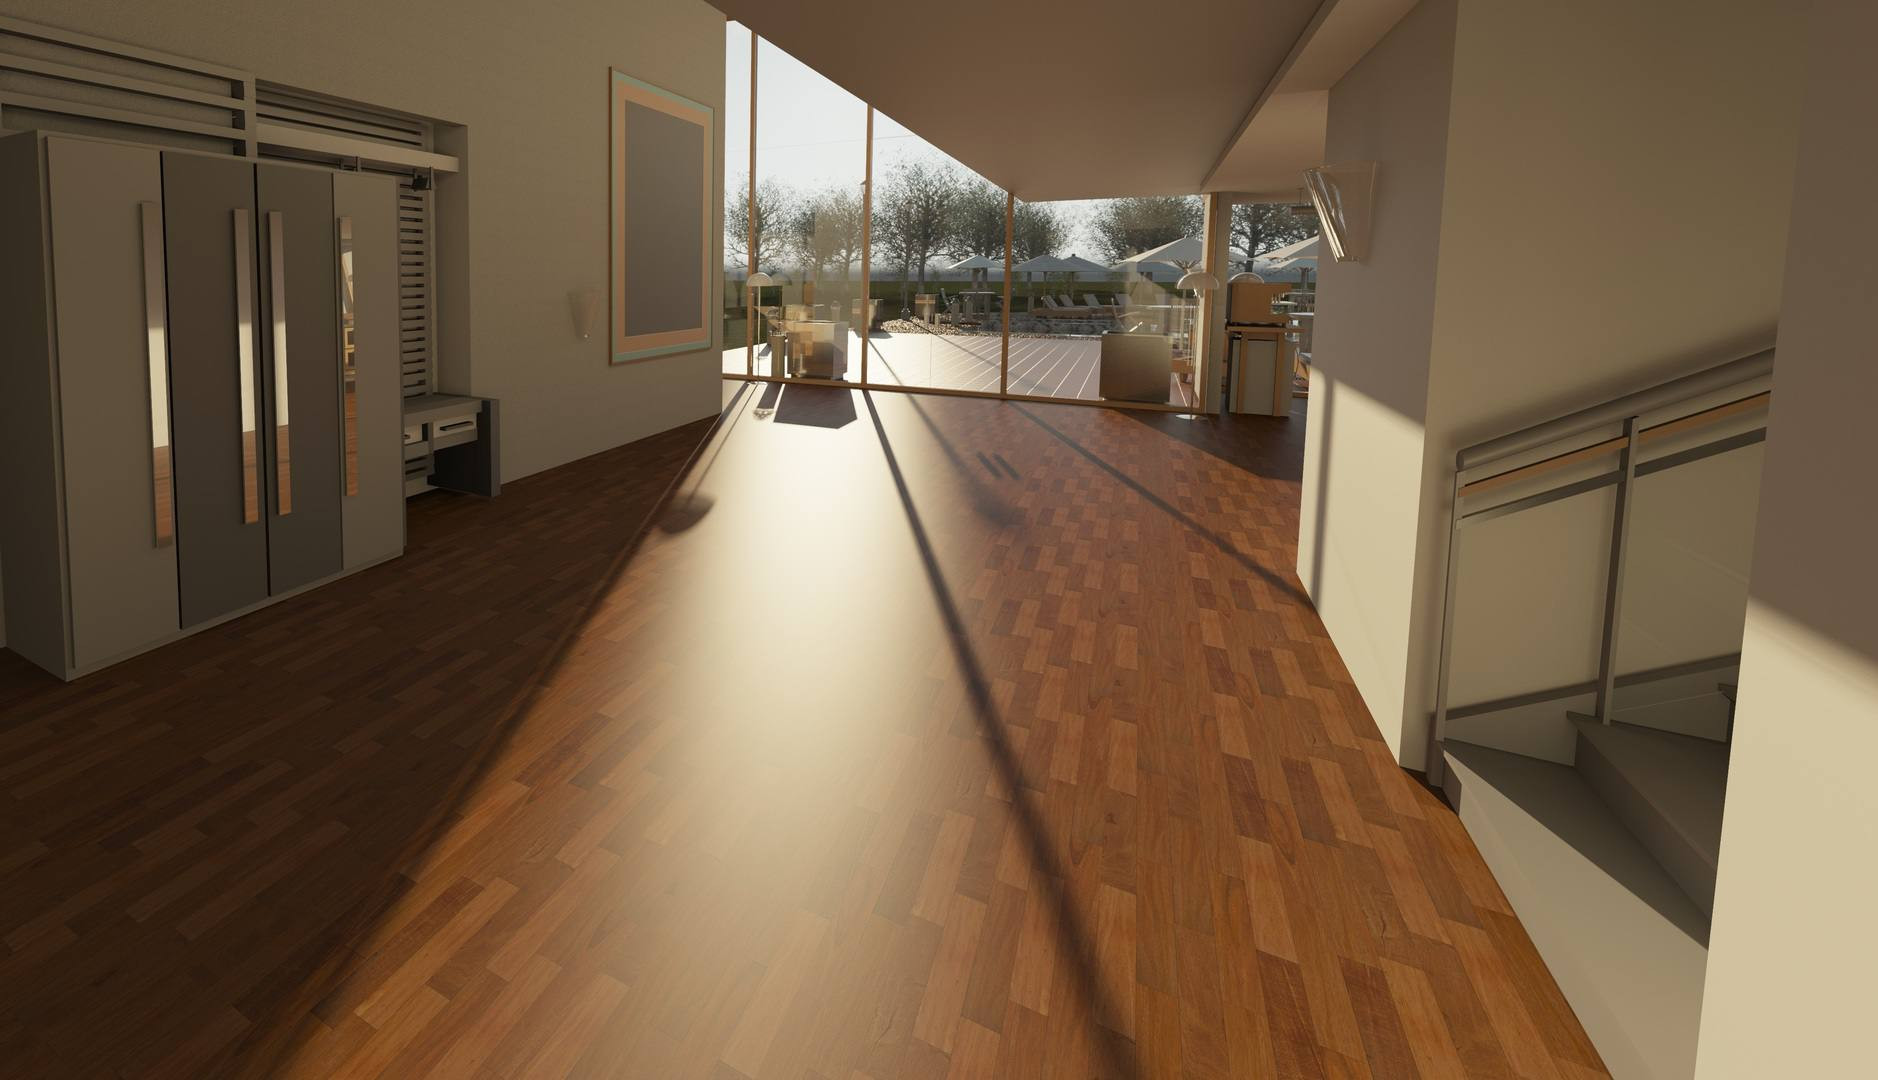 laminate flooring versus engineered hardwood of common flooring types currently used in renovation and building for architecture wood house floor interior window 917178 pxhere com 5ba27a2cc9e77c00503b27b9